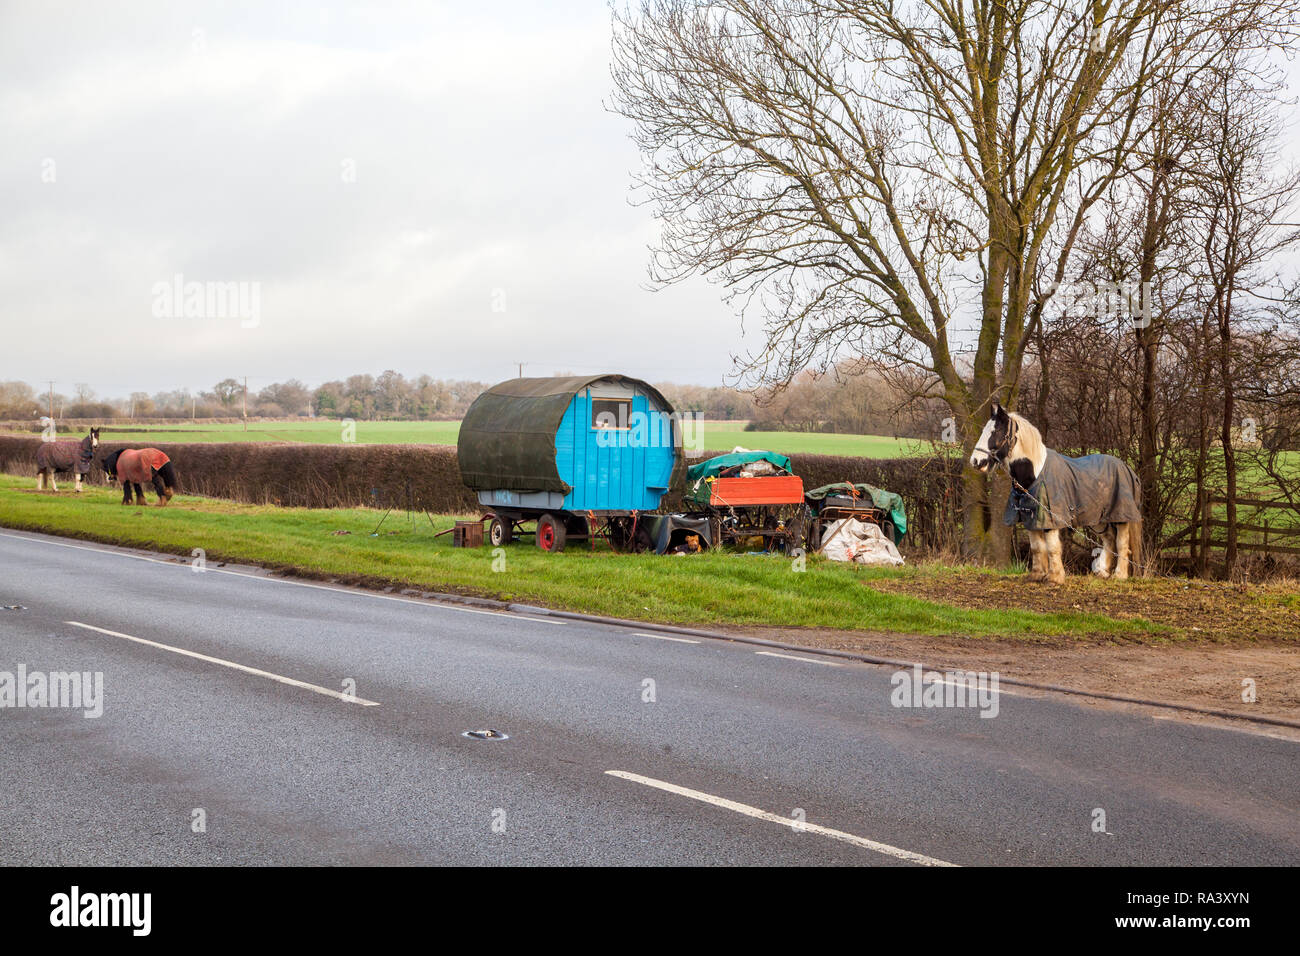 Travelers living in a traditional type horse drawn Romany gypsy caravan  stopped on the grass verge at the side of the road for their horses to graze - Stock Image